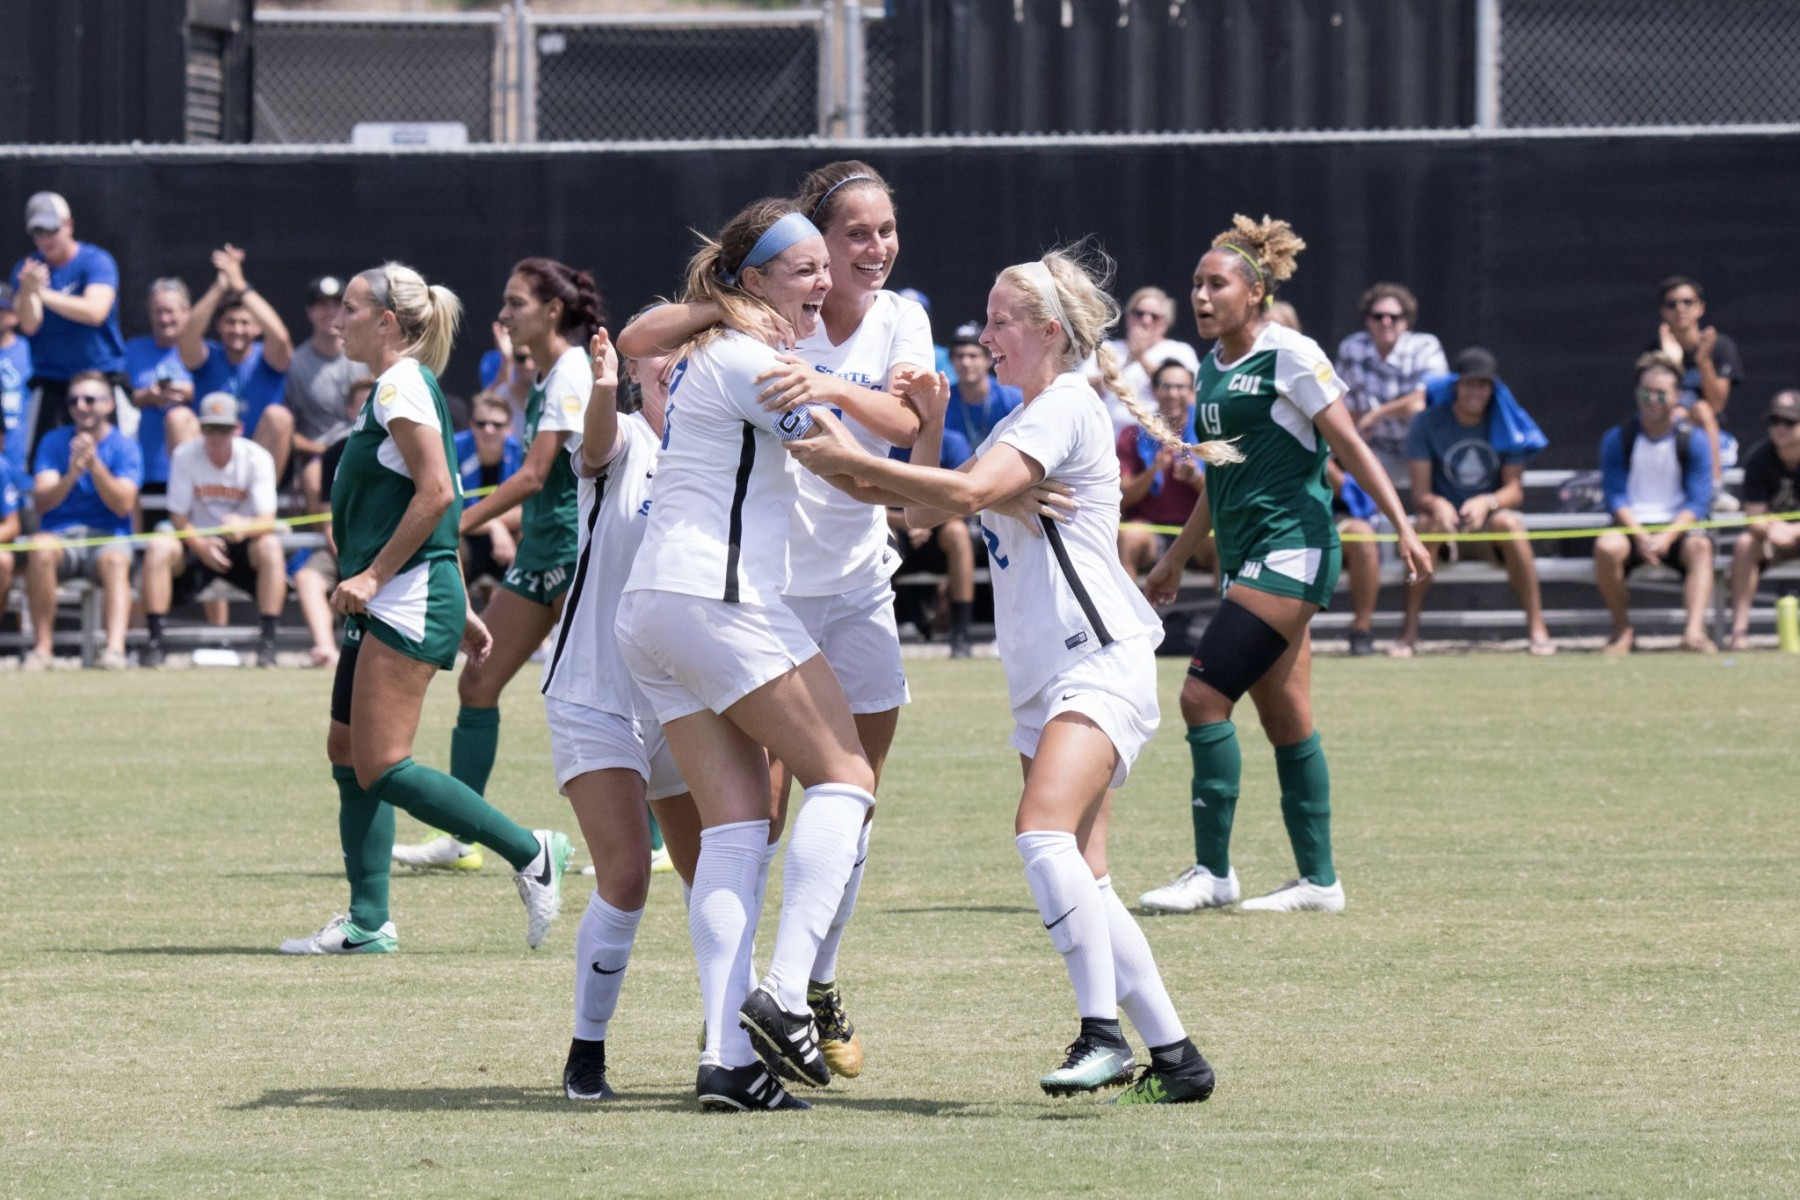 Women's soccer win vs. Concordia University Irvine 8.31.17